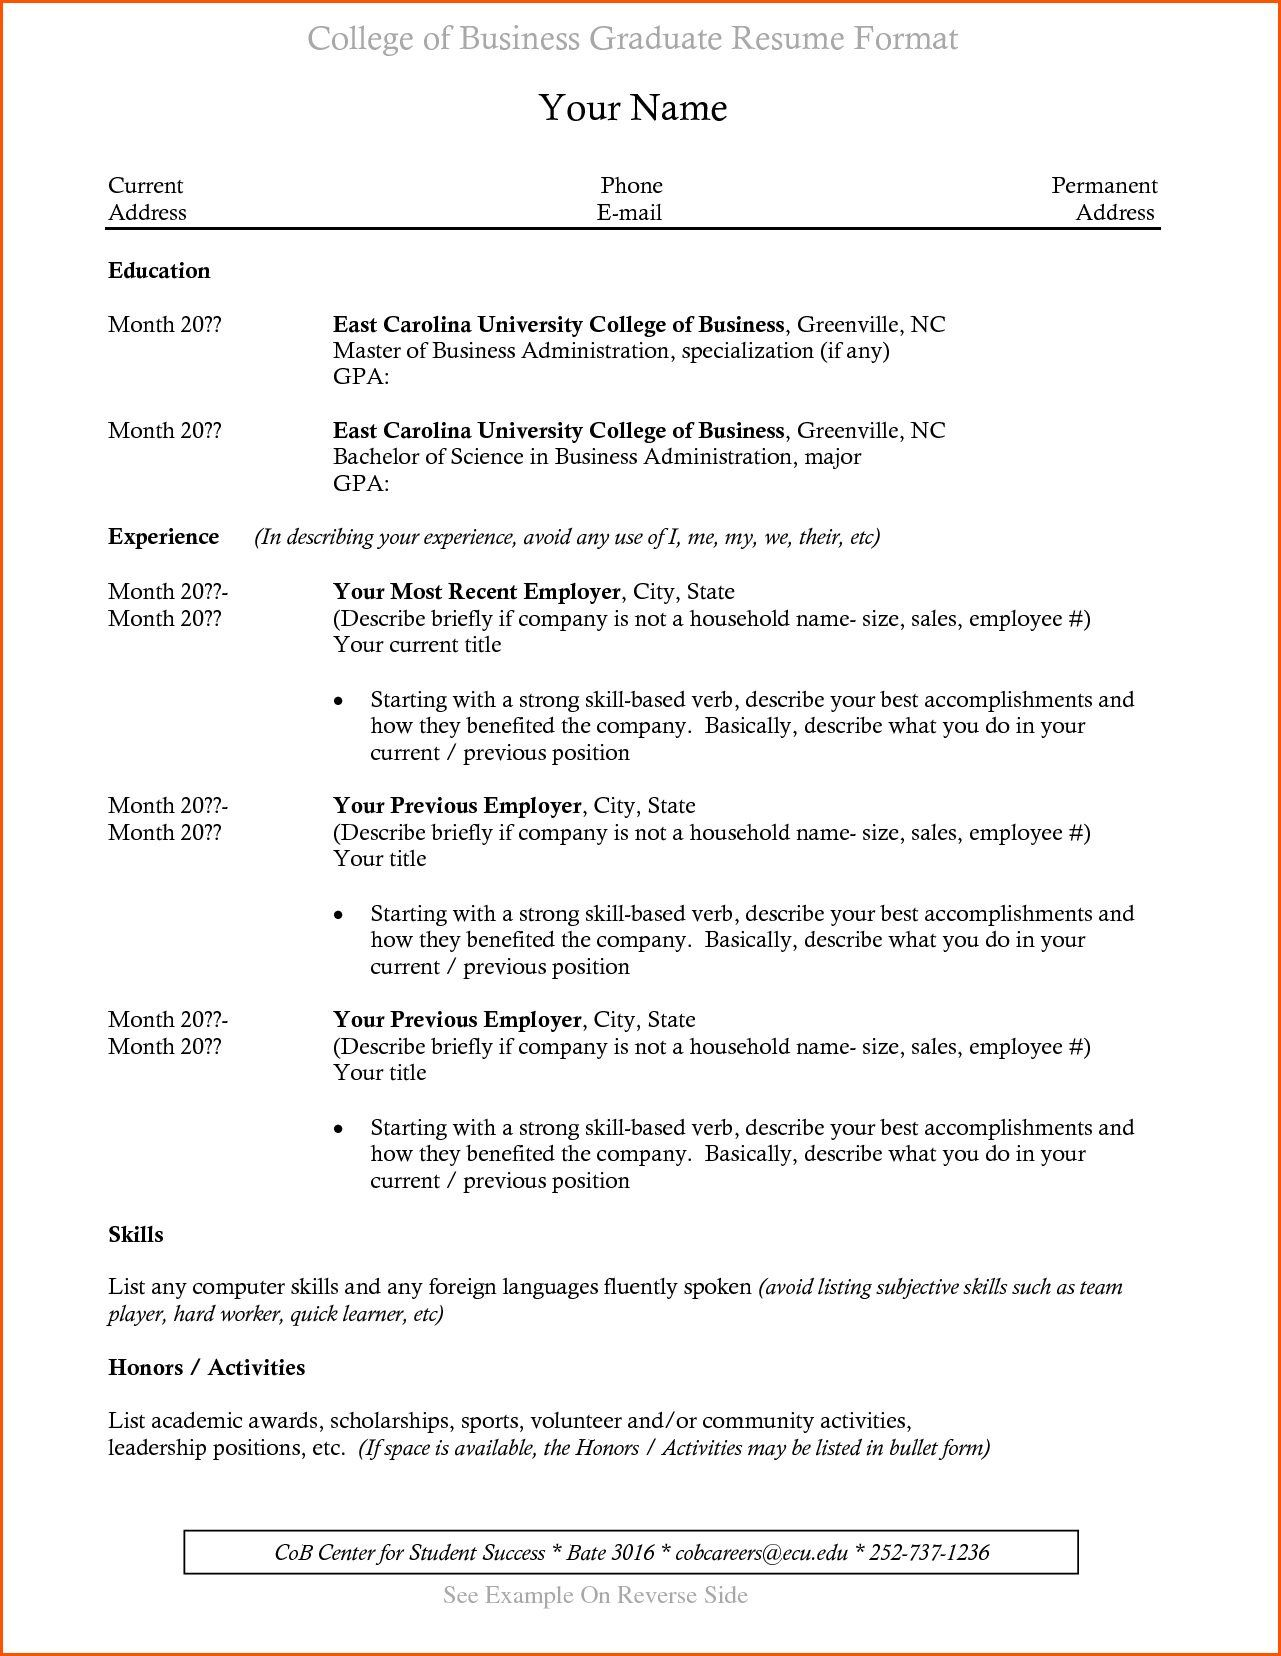 Pin by Brittany Wicks on Getting the job Nursing resume